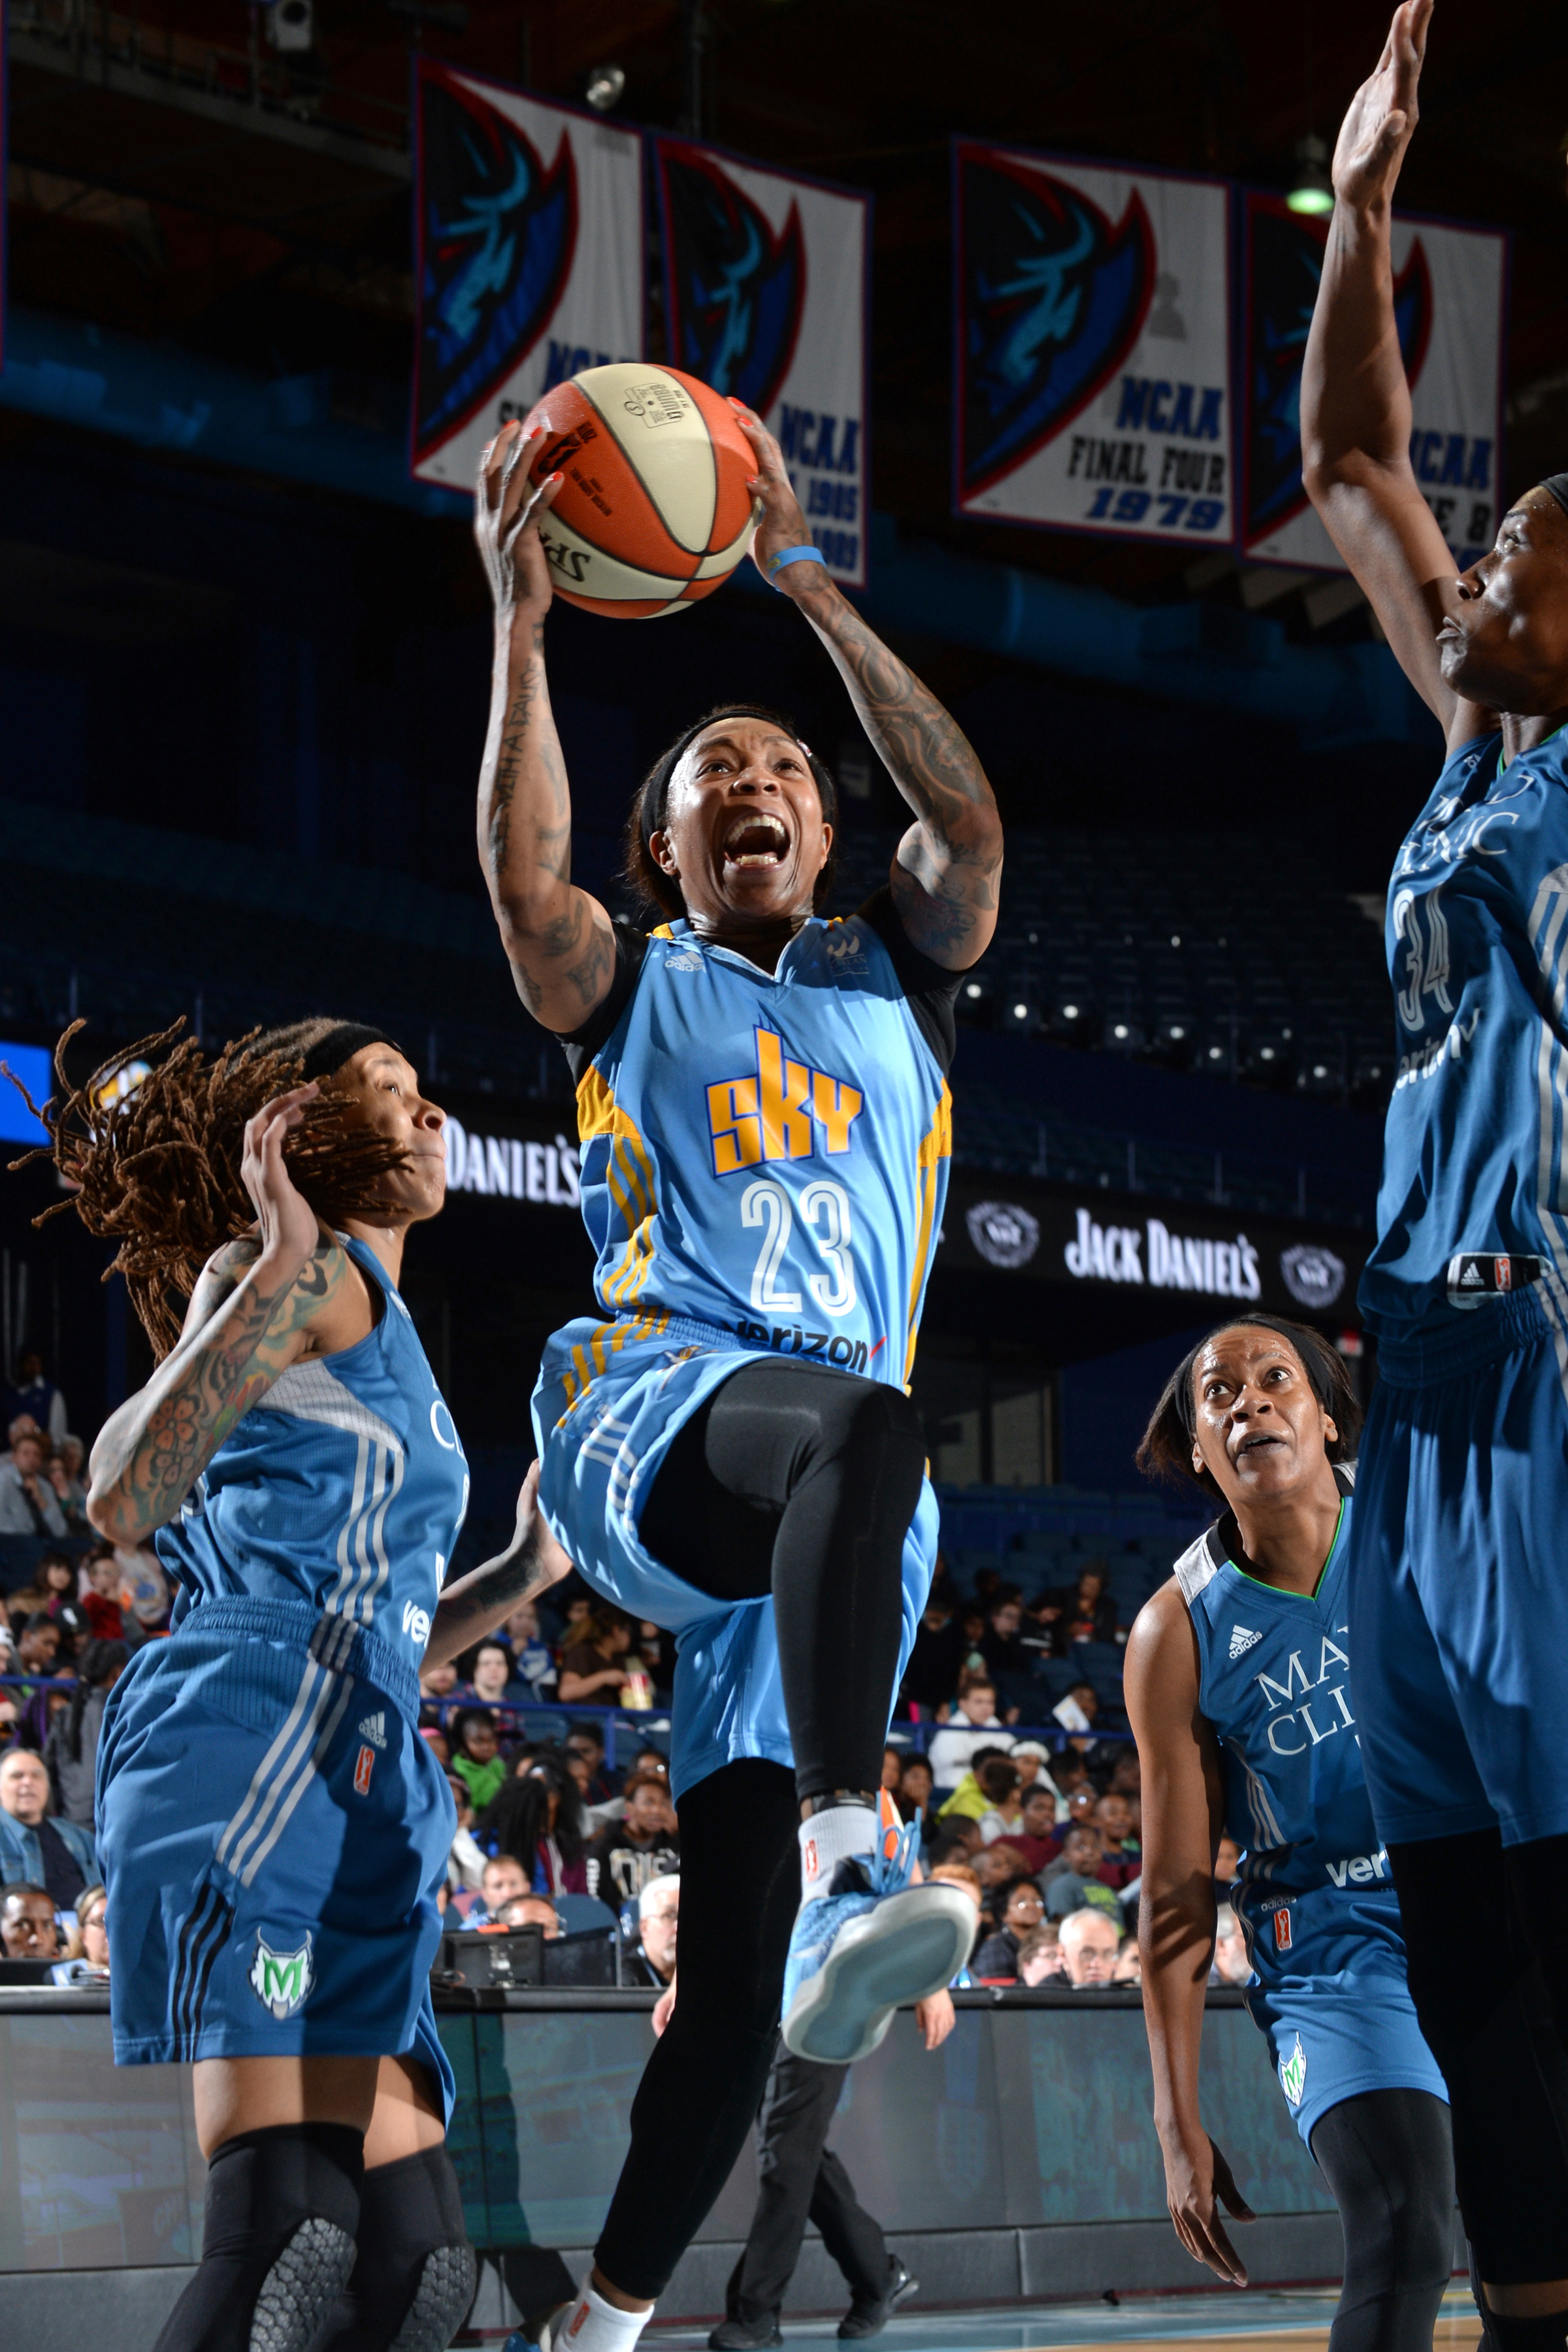 ROSEMONT, IL- MAY 18: Cappie Pondexter #23 of the Chicago Sky drives to the basket against the Minnesota Lynx on May 18, 2016 at the Allstate Arena in Rosemont, Illinois. NOTE TO USER: User expressly acknowledges and agrees that, by downloading and/or using this photograph, user is consenting to the terms and conditions of the Getty Images License Agreement. Mandatory Copyright Notice: Copyright 2016 NBAE (Photo by Randy Belice/NBAE via Getty Images)